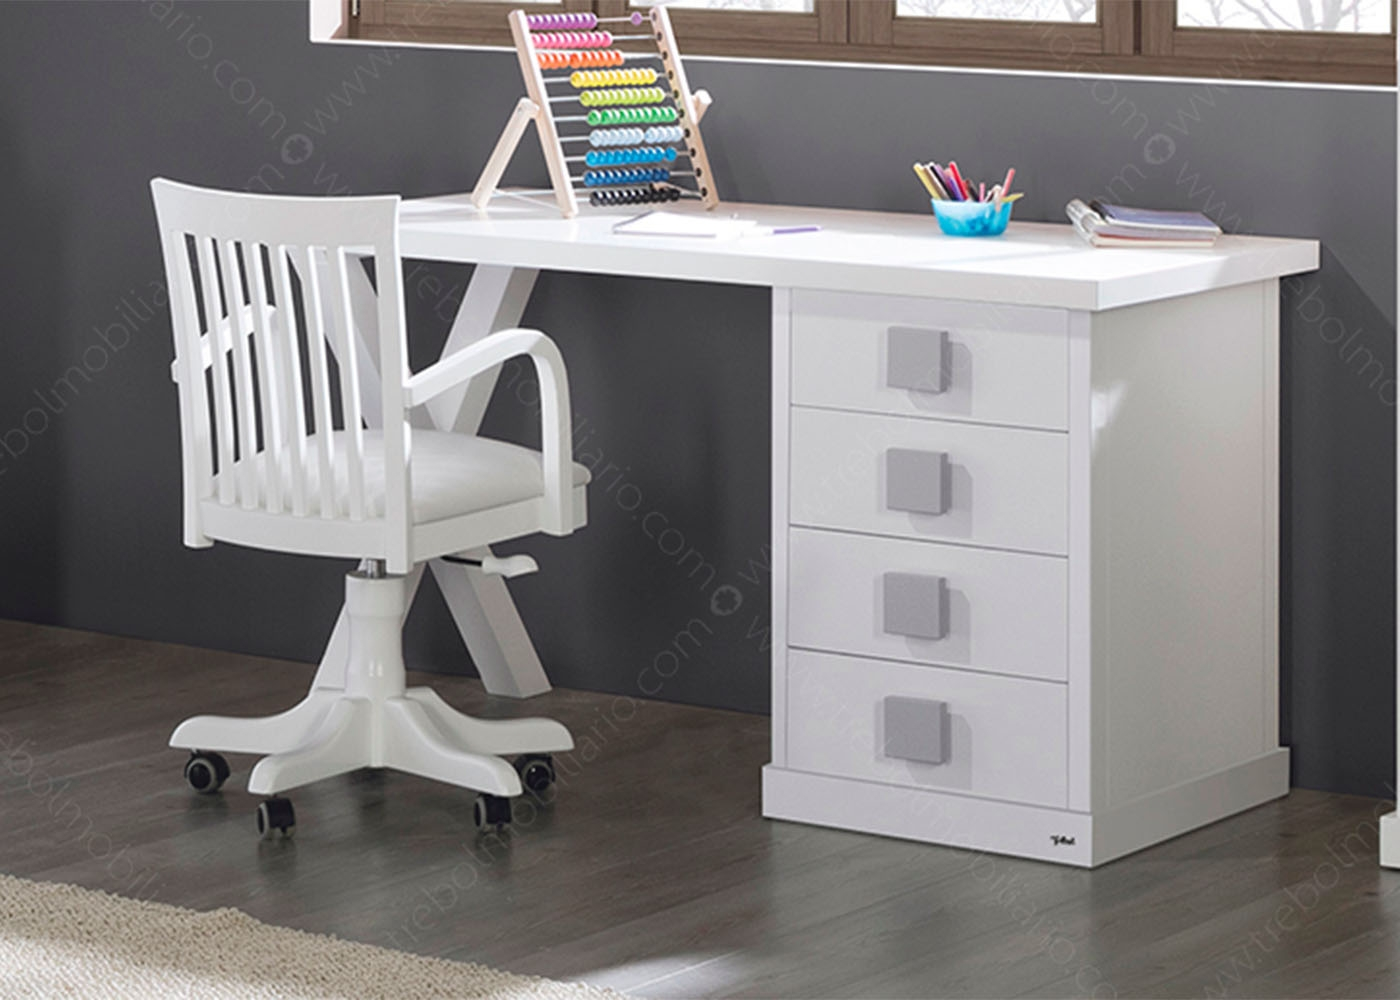 bureau l 150 cm avec caisson 4 tiroirs 16 couleurs ksl. Black Bedroom Furniture Sets. Home Design Ideas